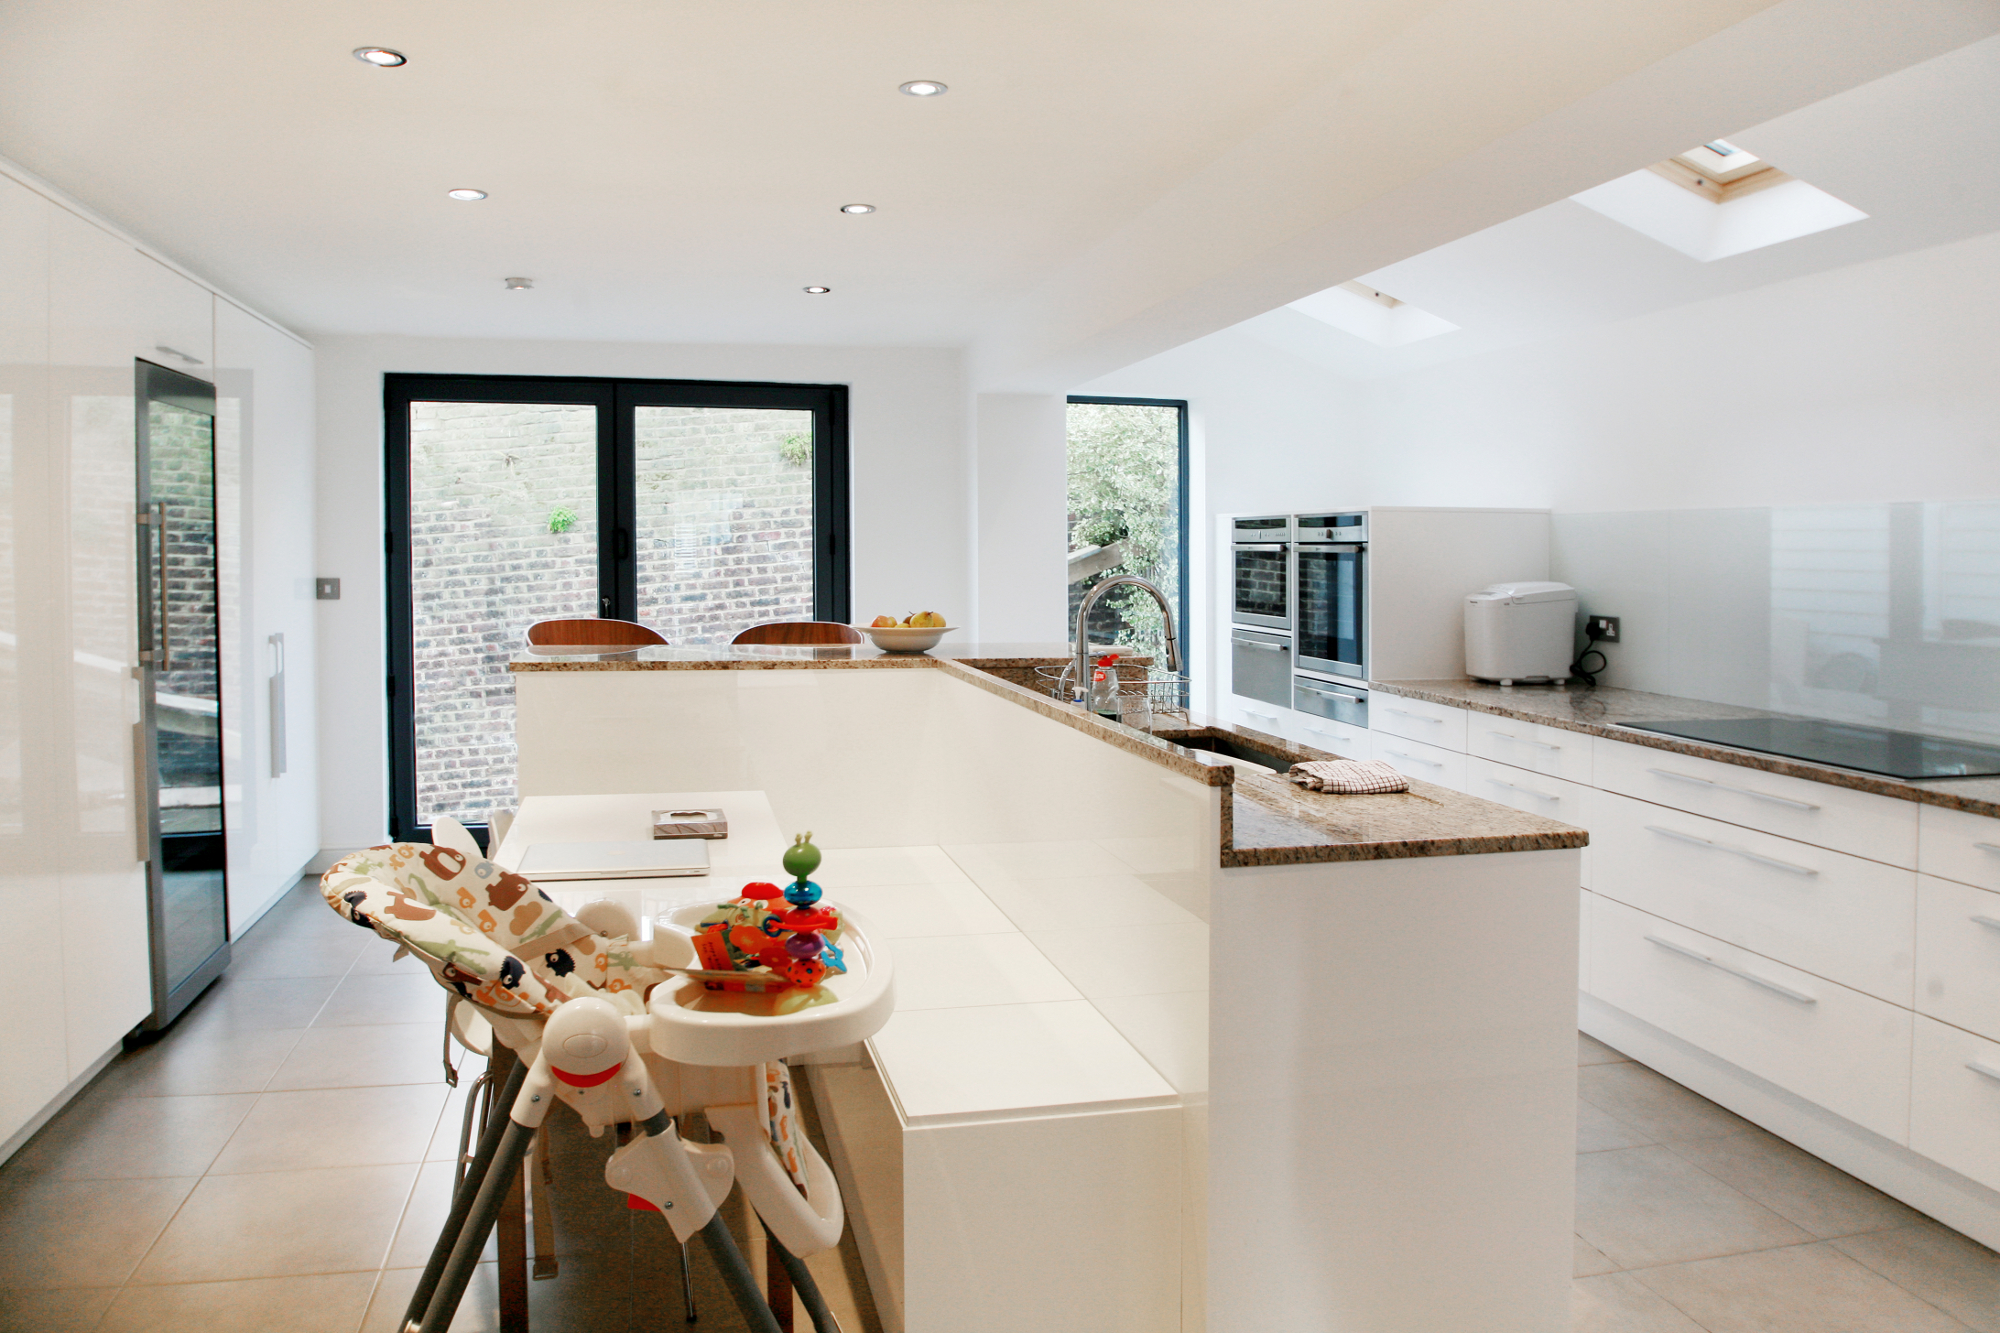 kitchen extension design ideas kitchen extensions architect designs and ideas 19475